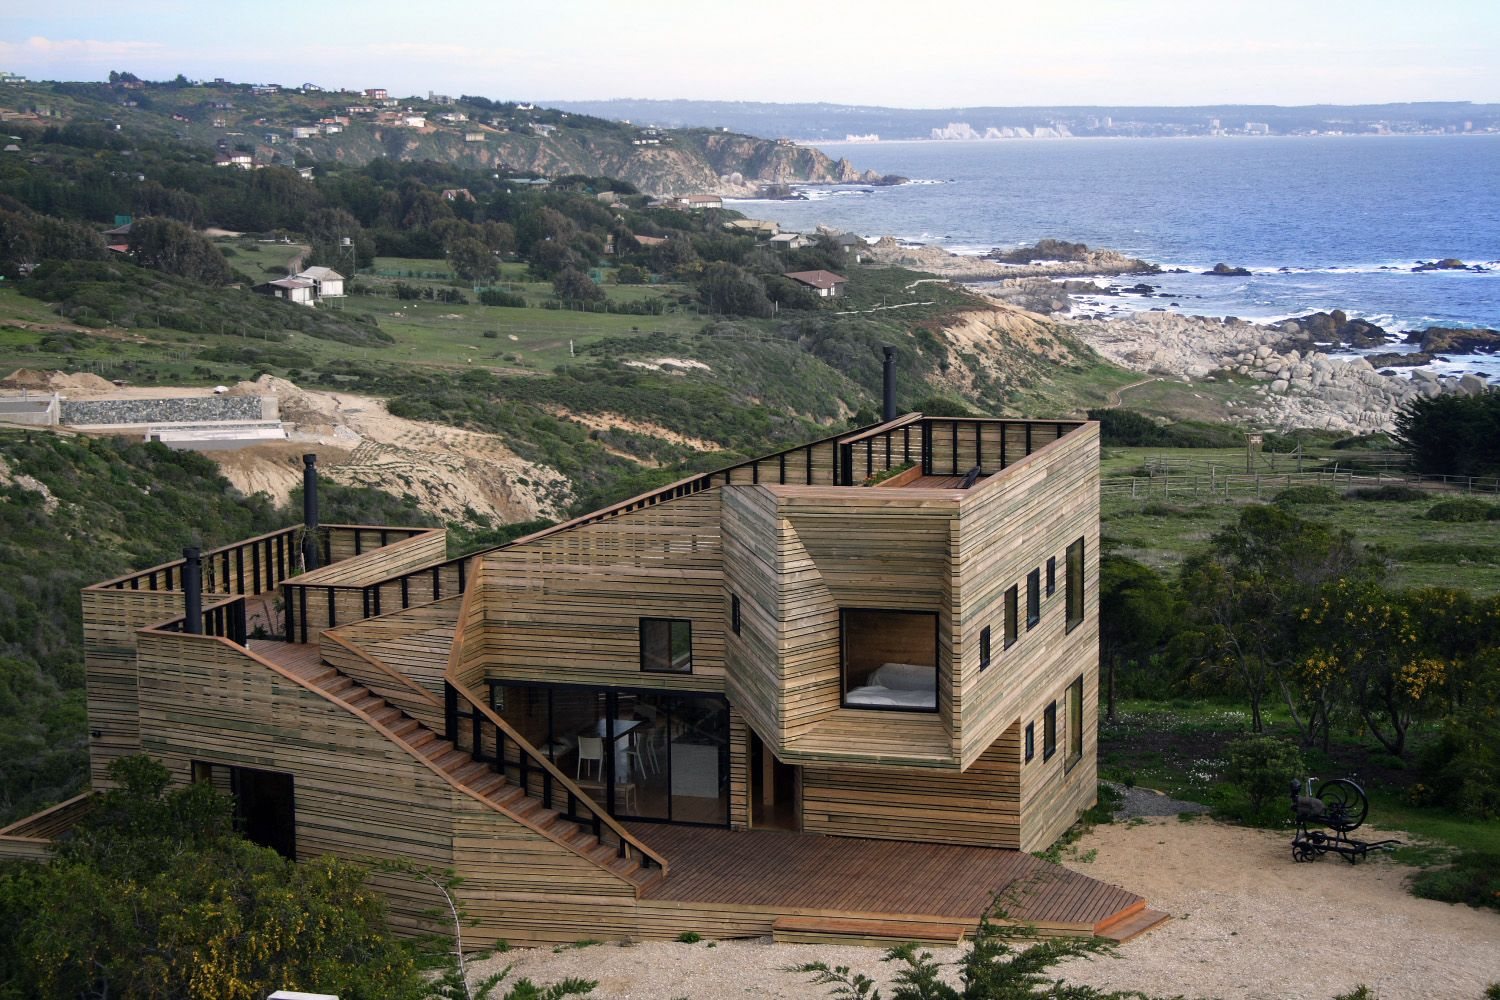 Astounding Pinterest Minecraft Wooden House 1 000 Largest Home Design Picture Inspirations Pitcheantrous